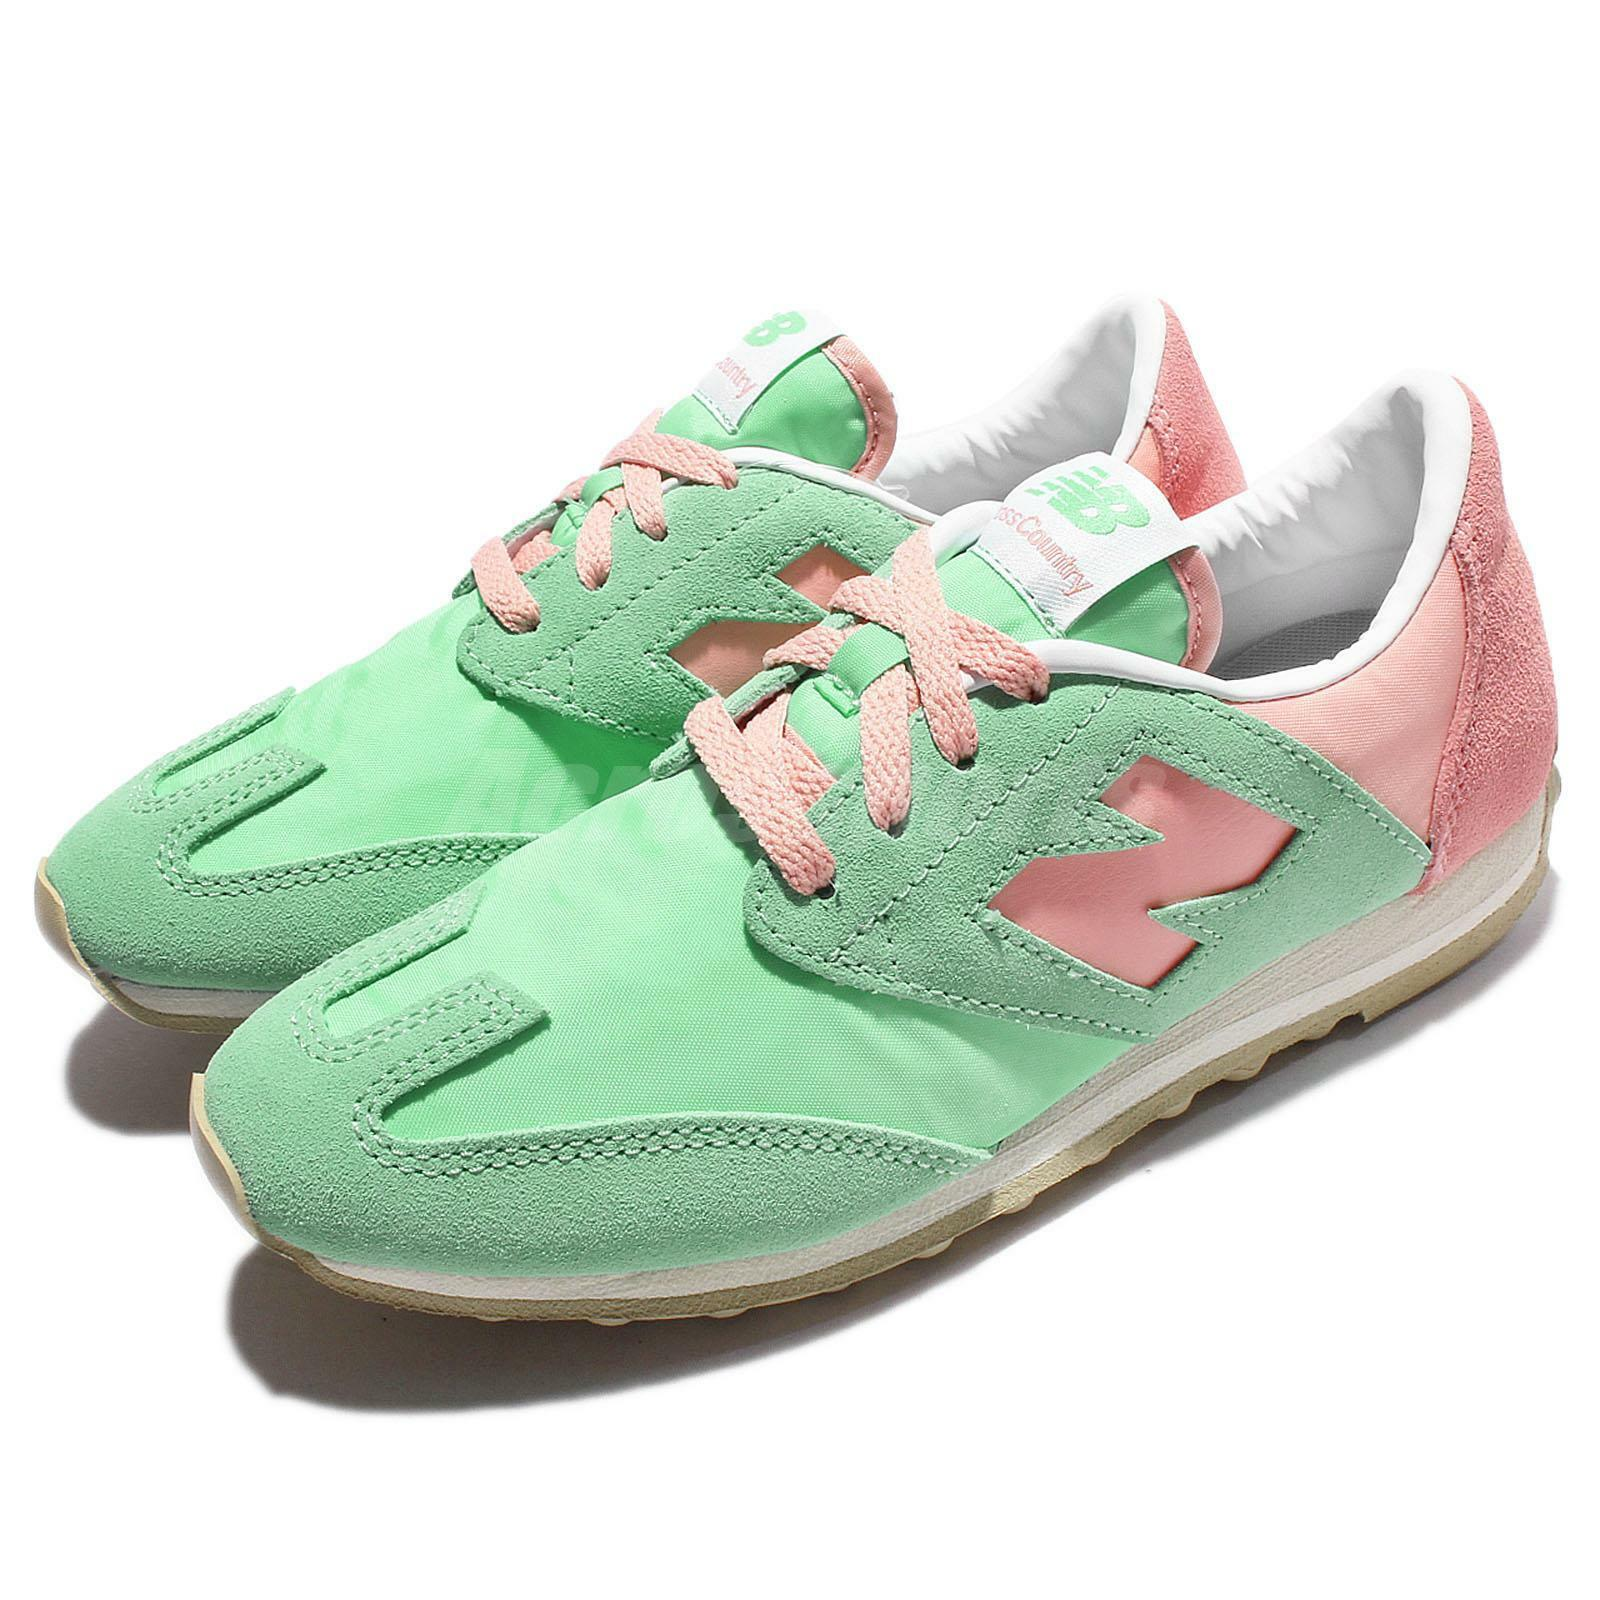 New Balance CCSS D Green Pink homme Femme Retro Vintage chaussures Sneakers CCSSD